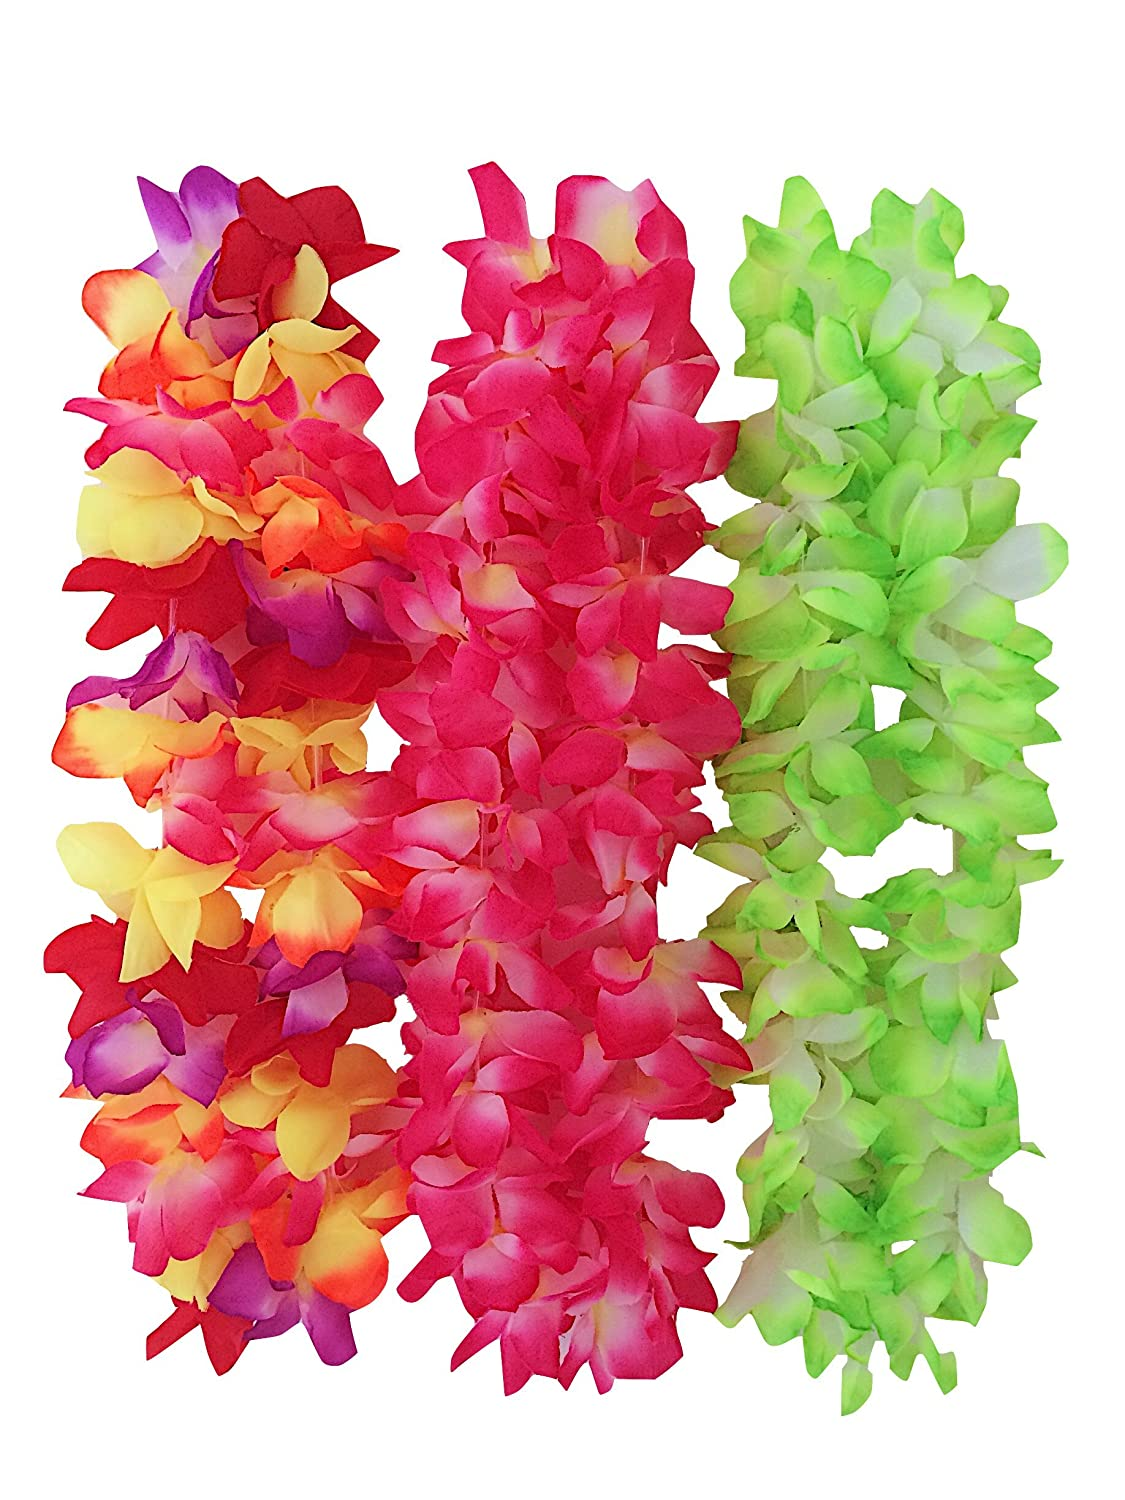 Amazon.com: 12 High Quality Hawaiian Leis That LOOK REAL - Polyester ...